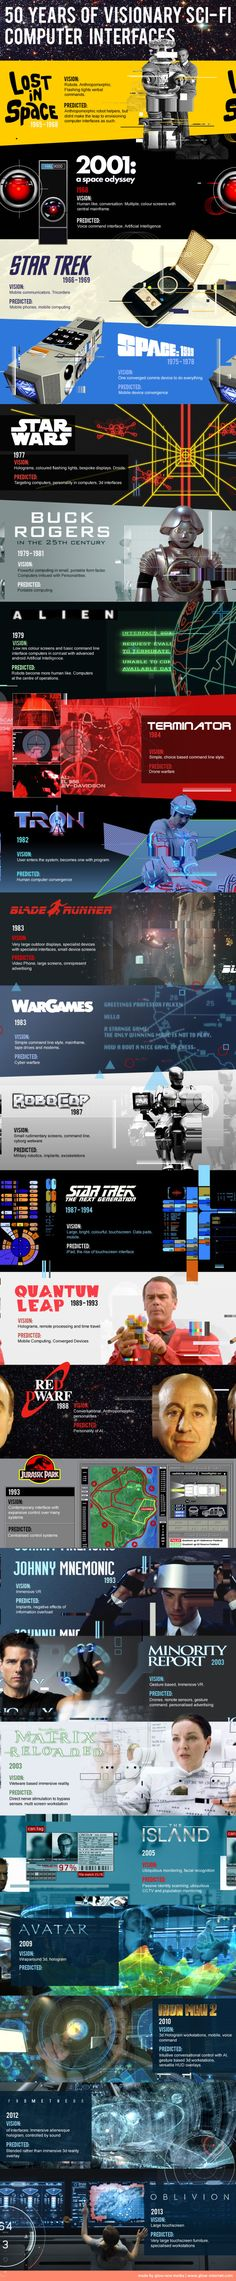 50 Years of Visionary Sci-Fi Computer Interfaces infographic